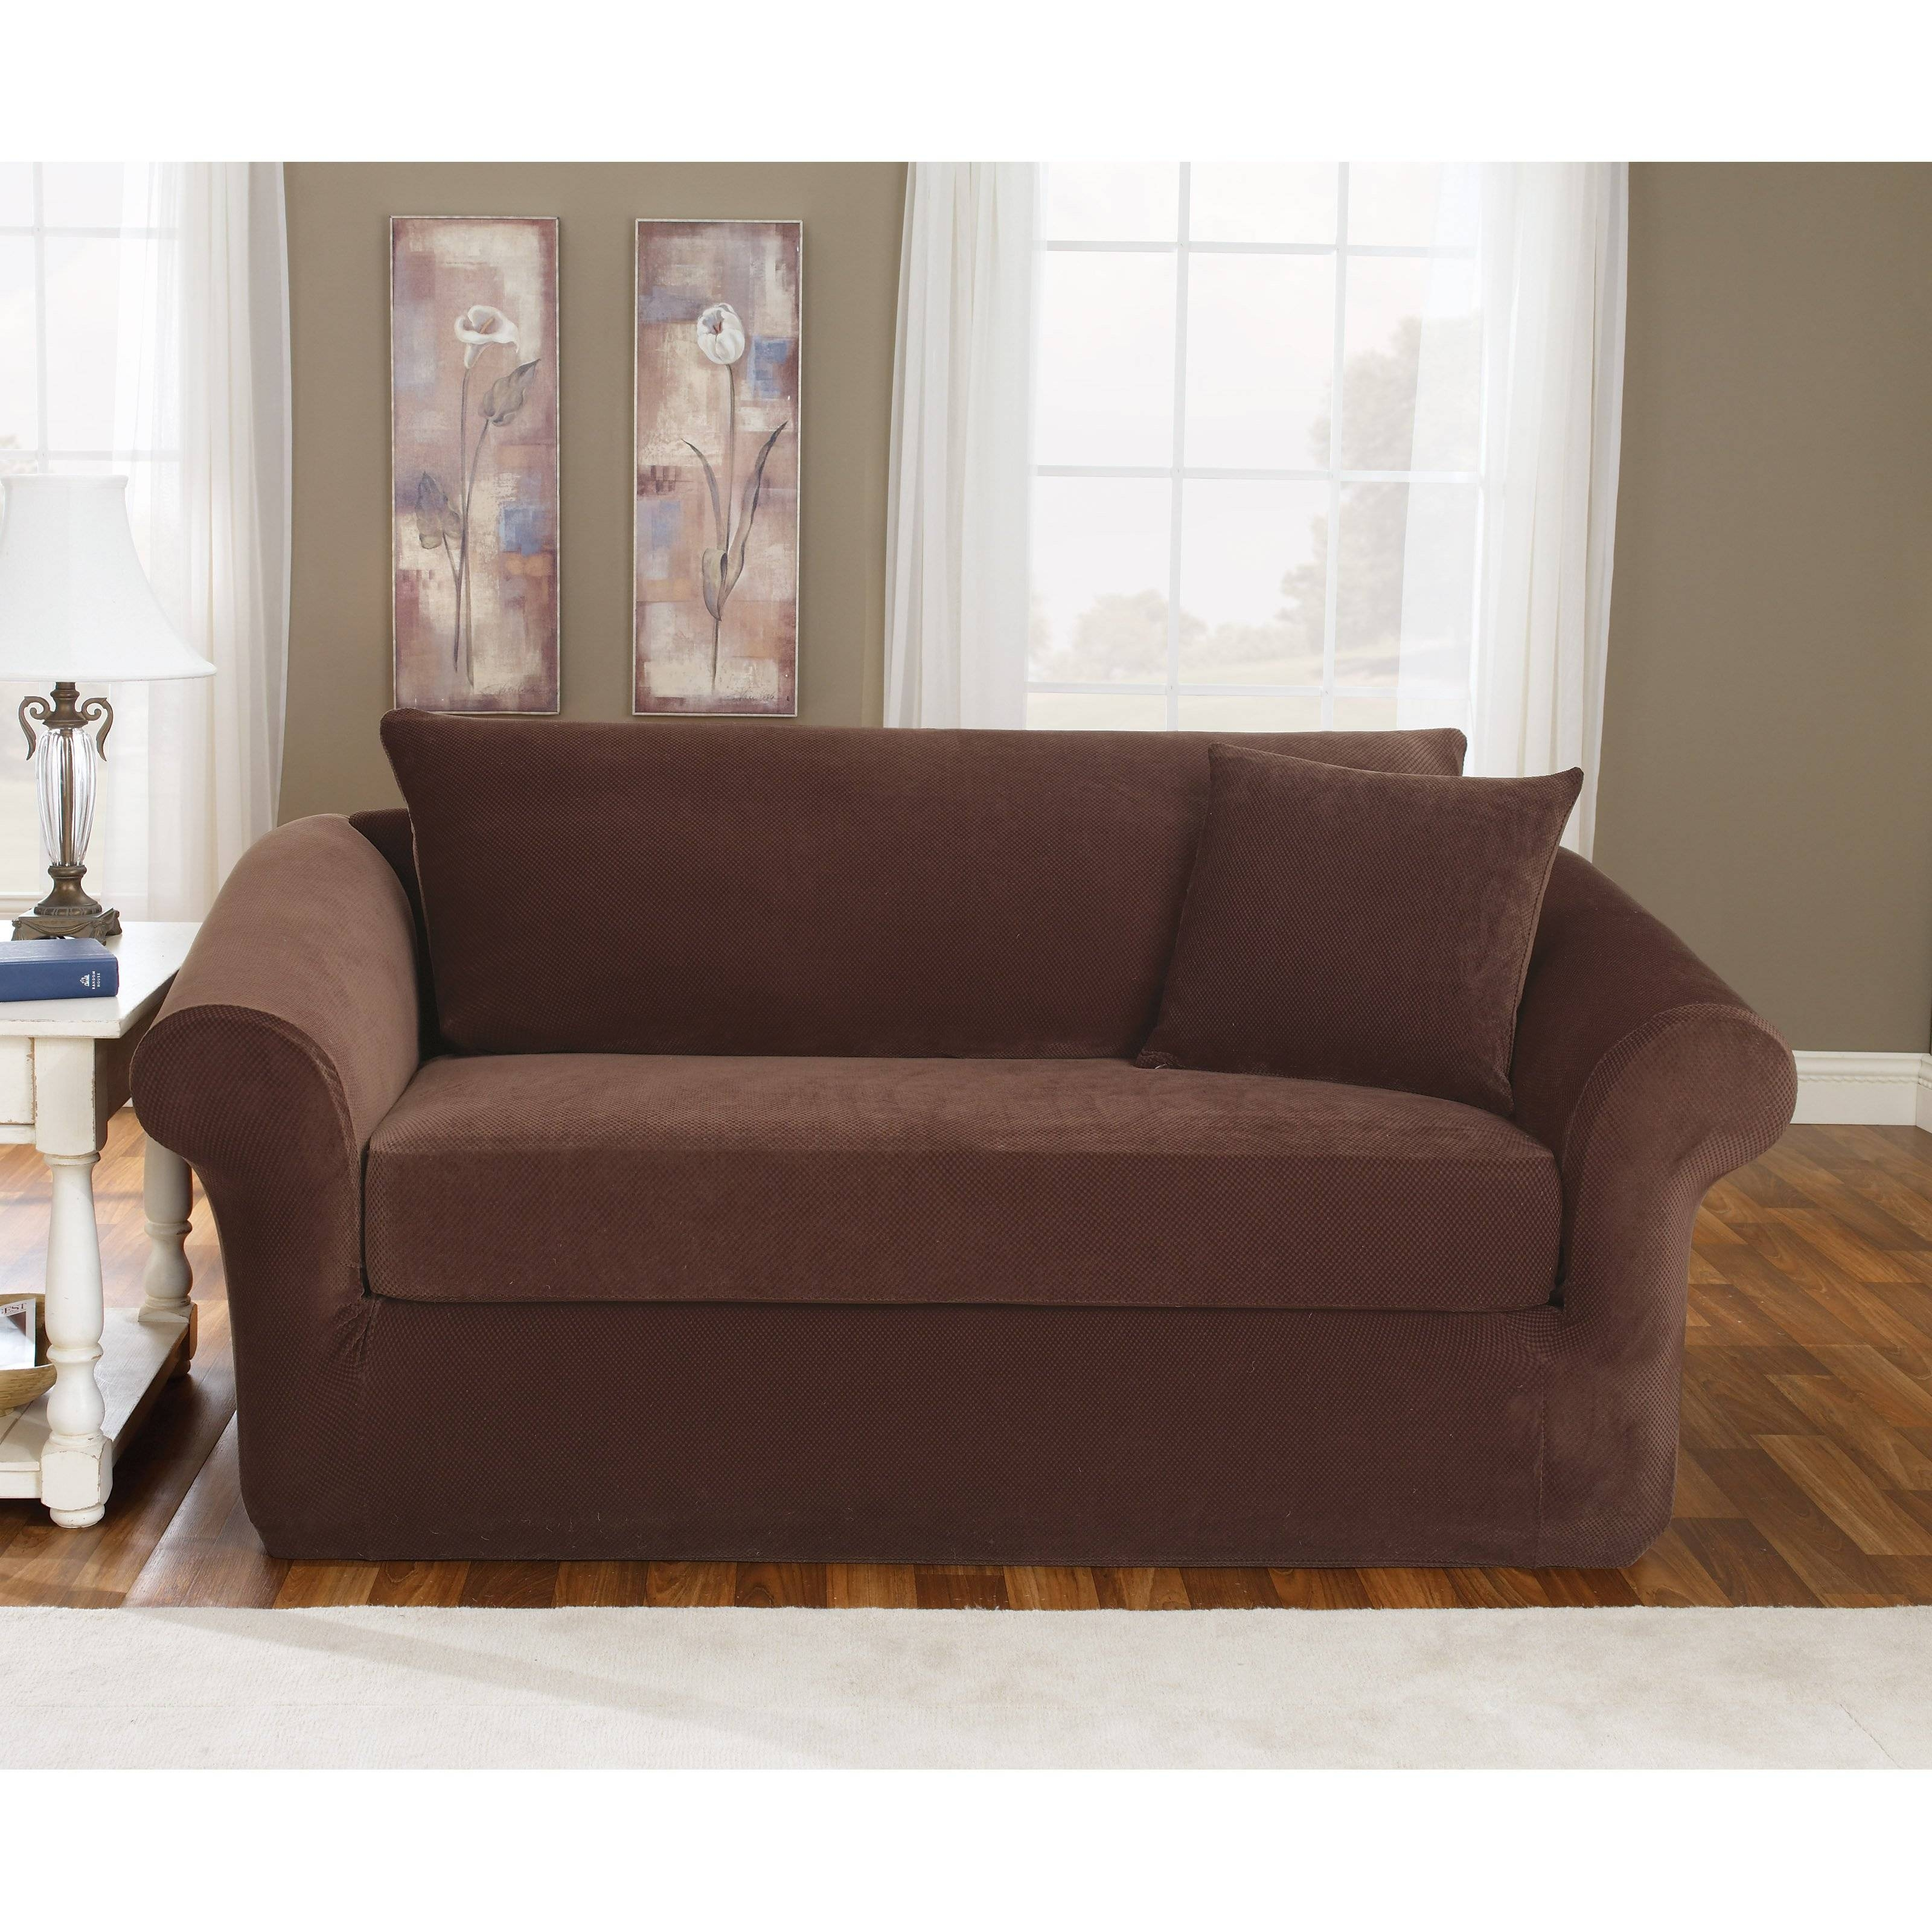 Sure Fit Stretch Pique Three Piece Loveseat Slipcover | Hayneedle inside Loveseat Slipcovers 3 Pieces (Image 12 of 15)